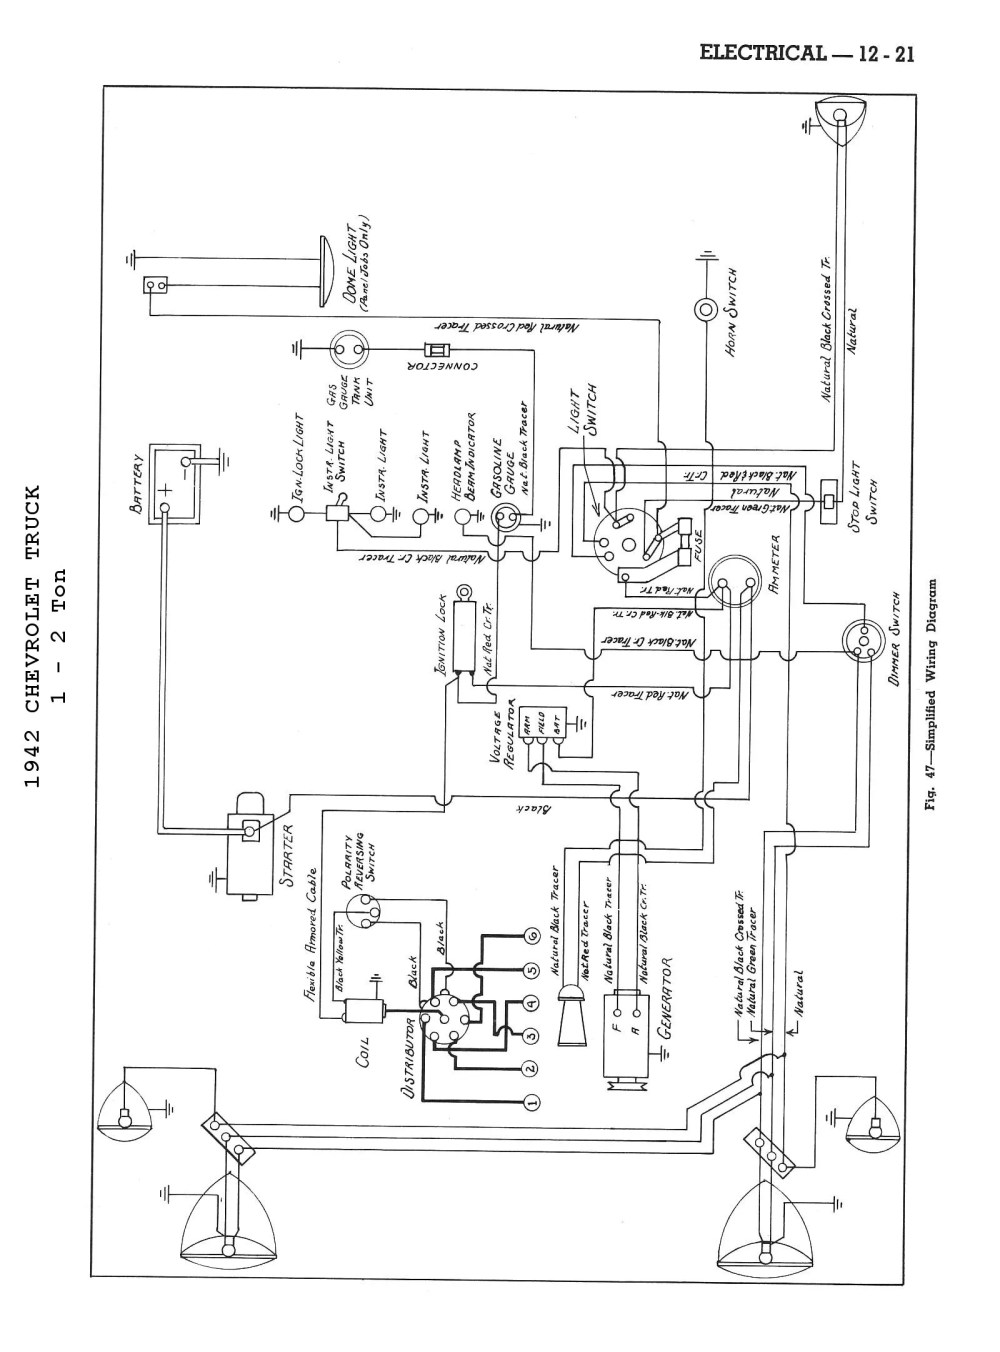 medium resolution of 1942 chevy wiring diagram wiring diagram todays 1942 mercury wiring diagram 1942 chevy wiring diagram